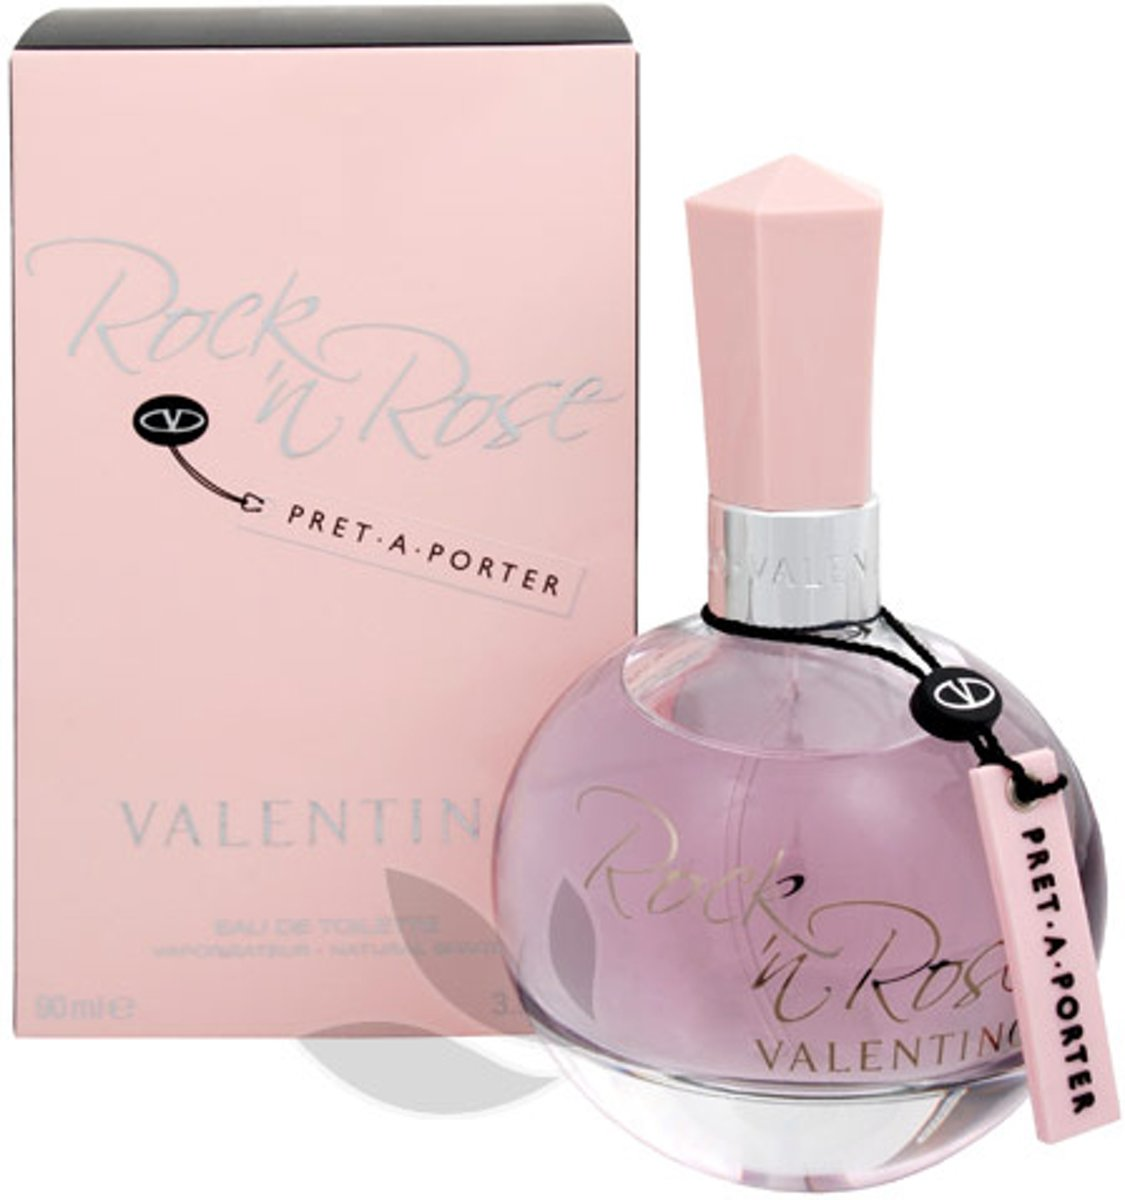 Rock n Rose Pret A Porter - 90 ml - Eau de toilette